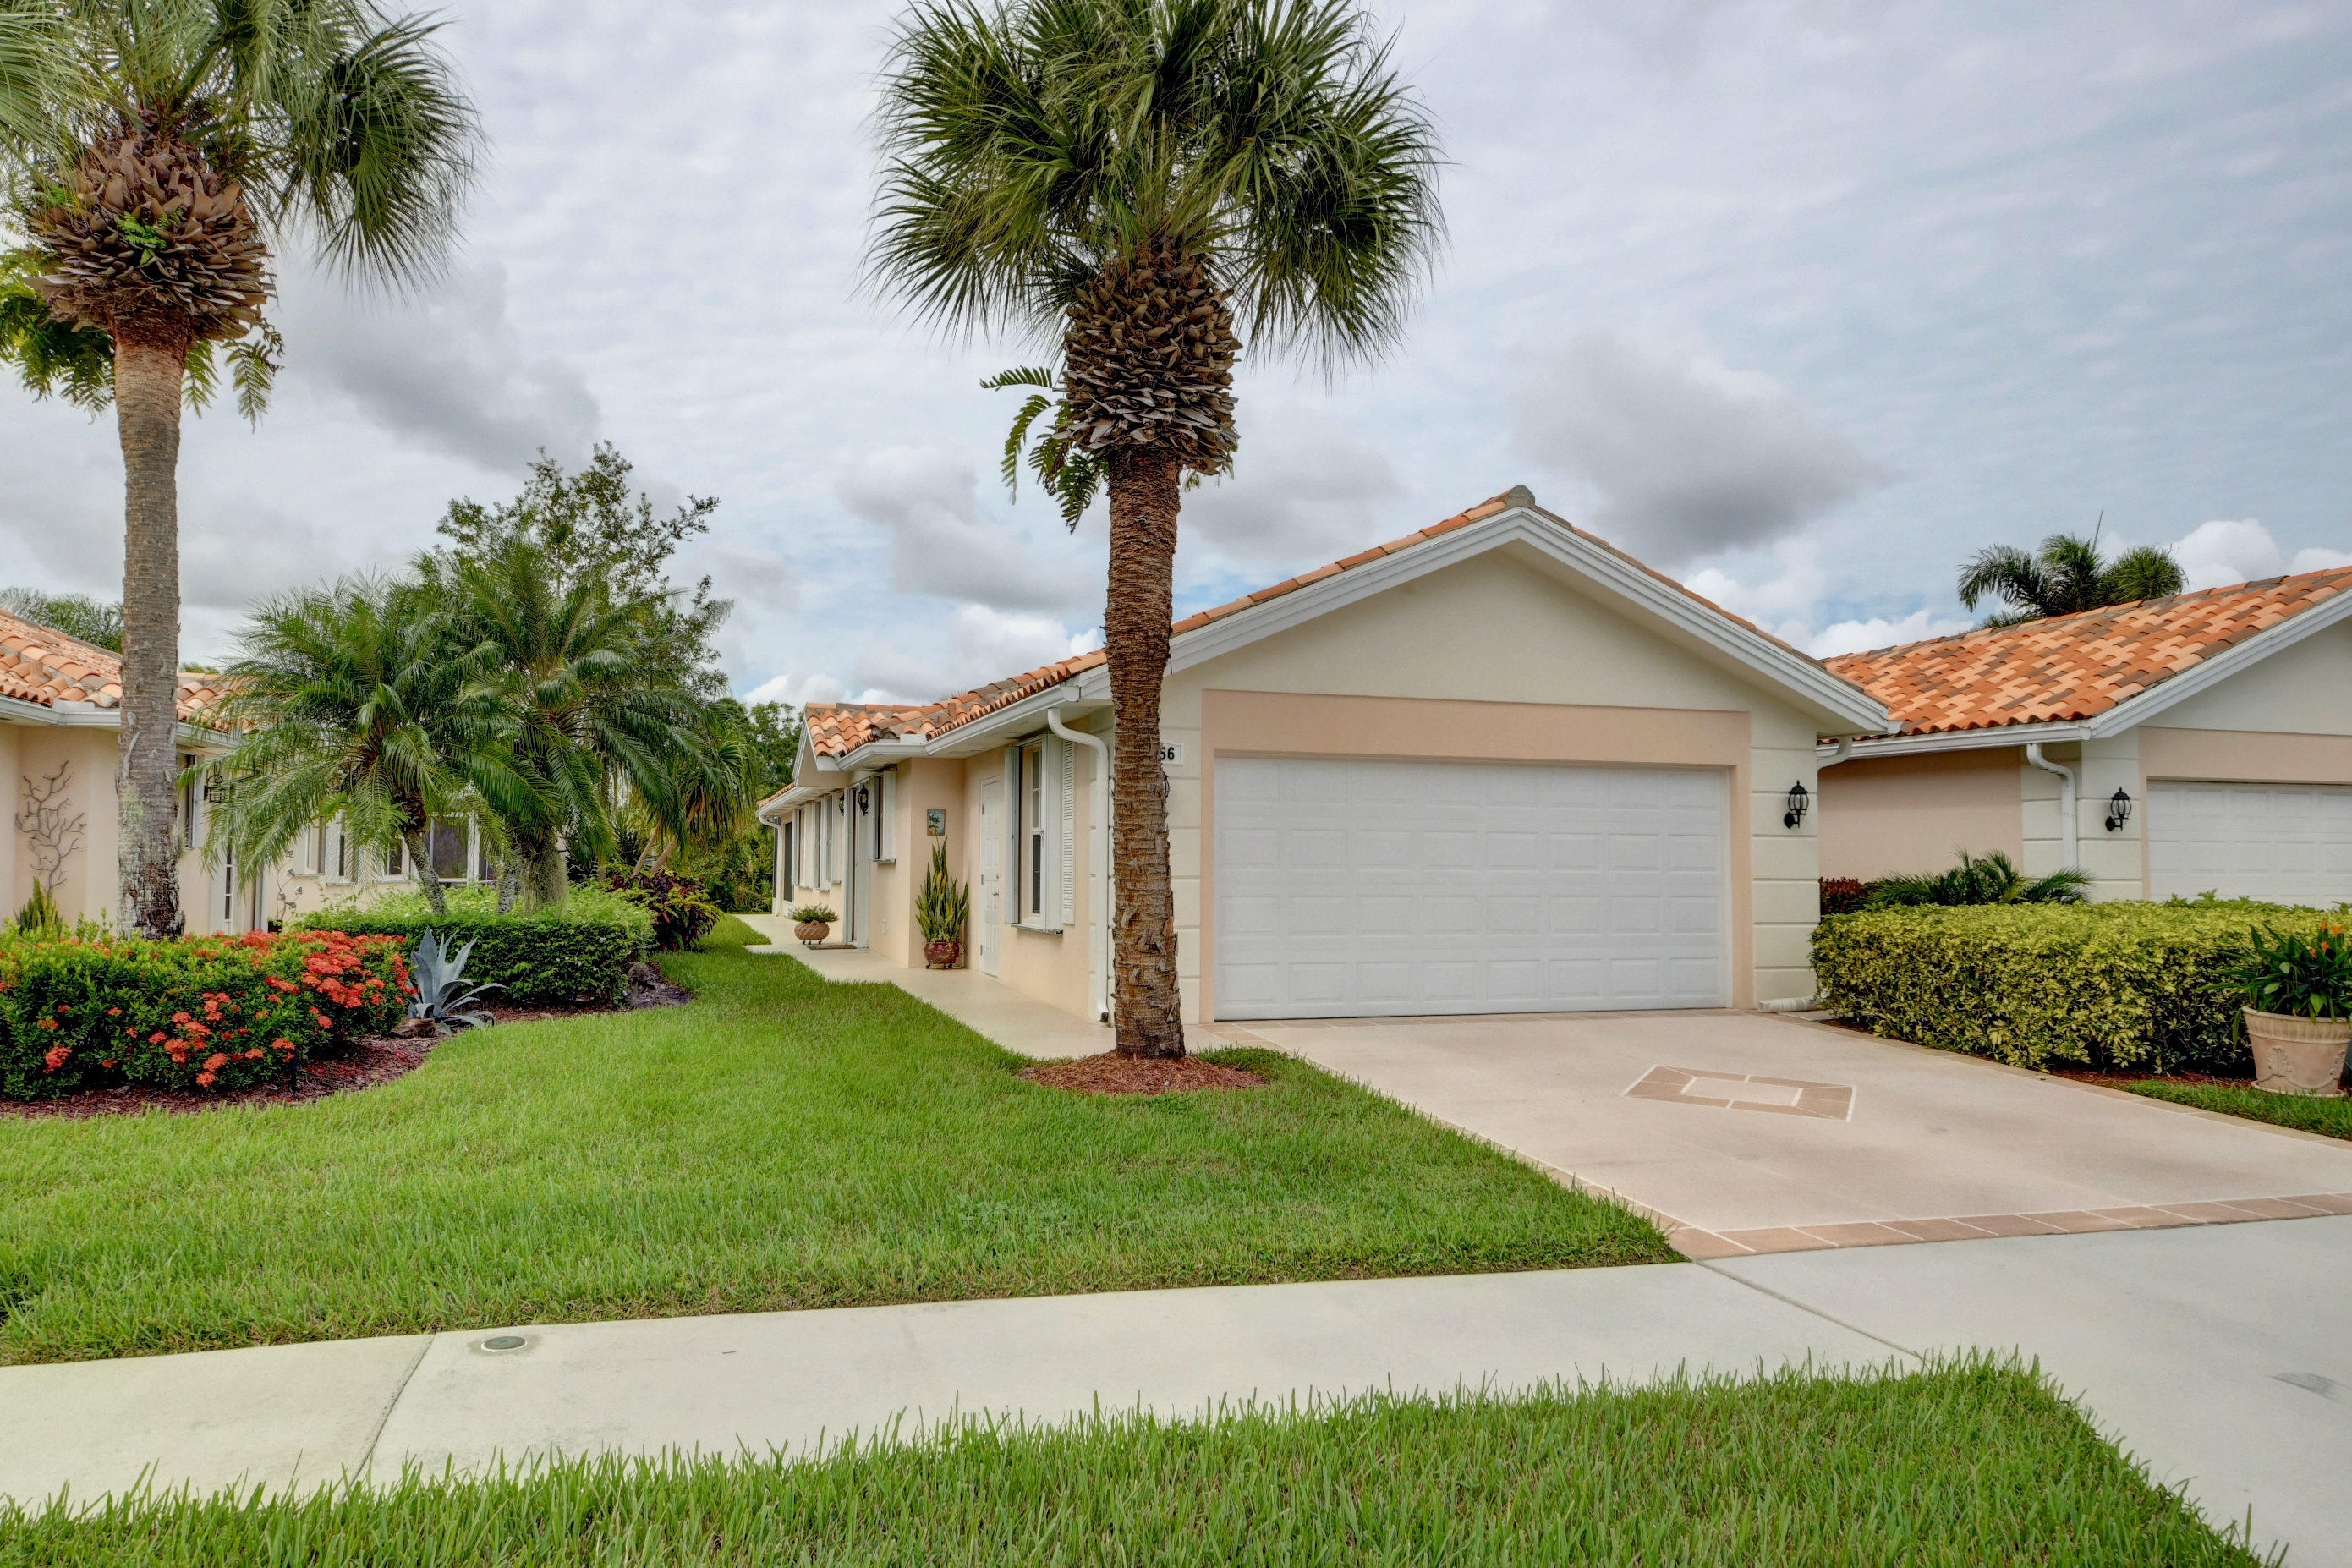 Photo of 8356 SE Double Tree Drive, Hobe Sound, FL 33455